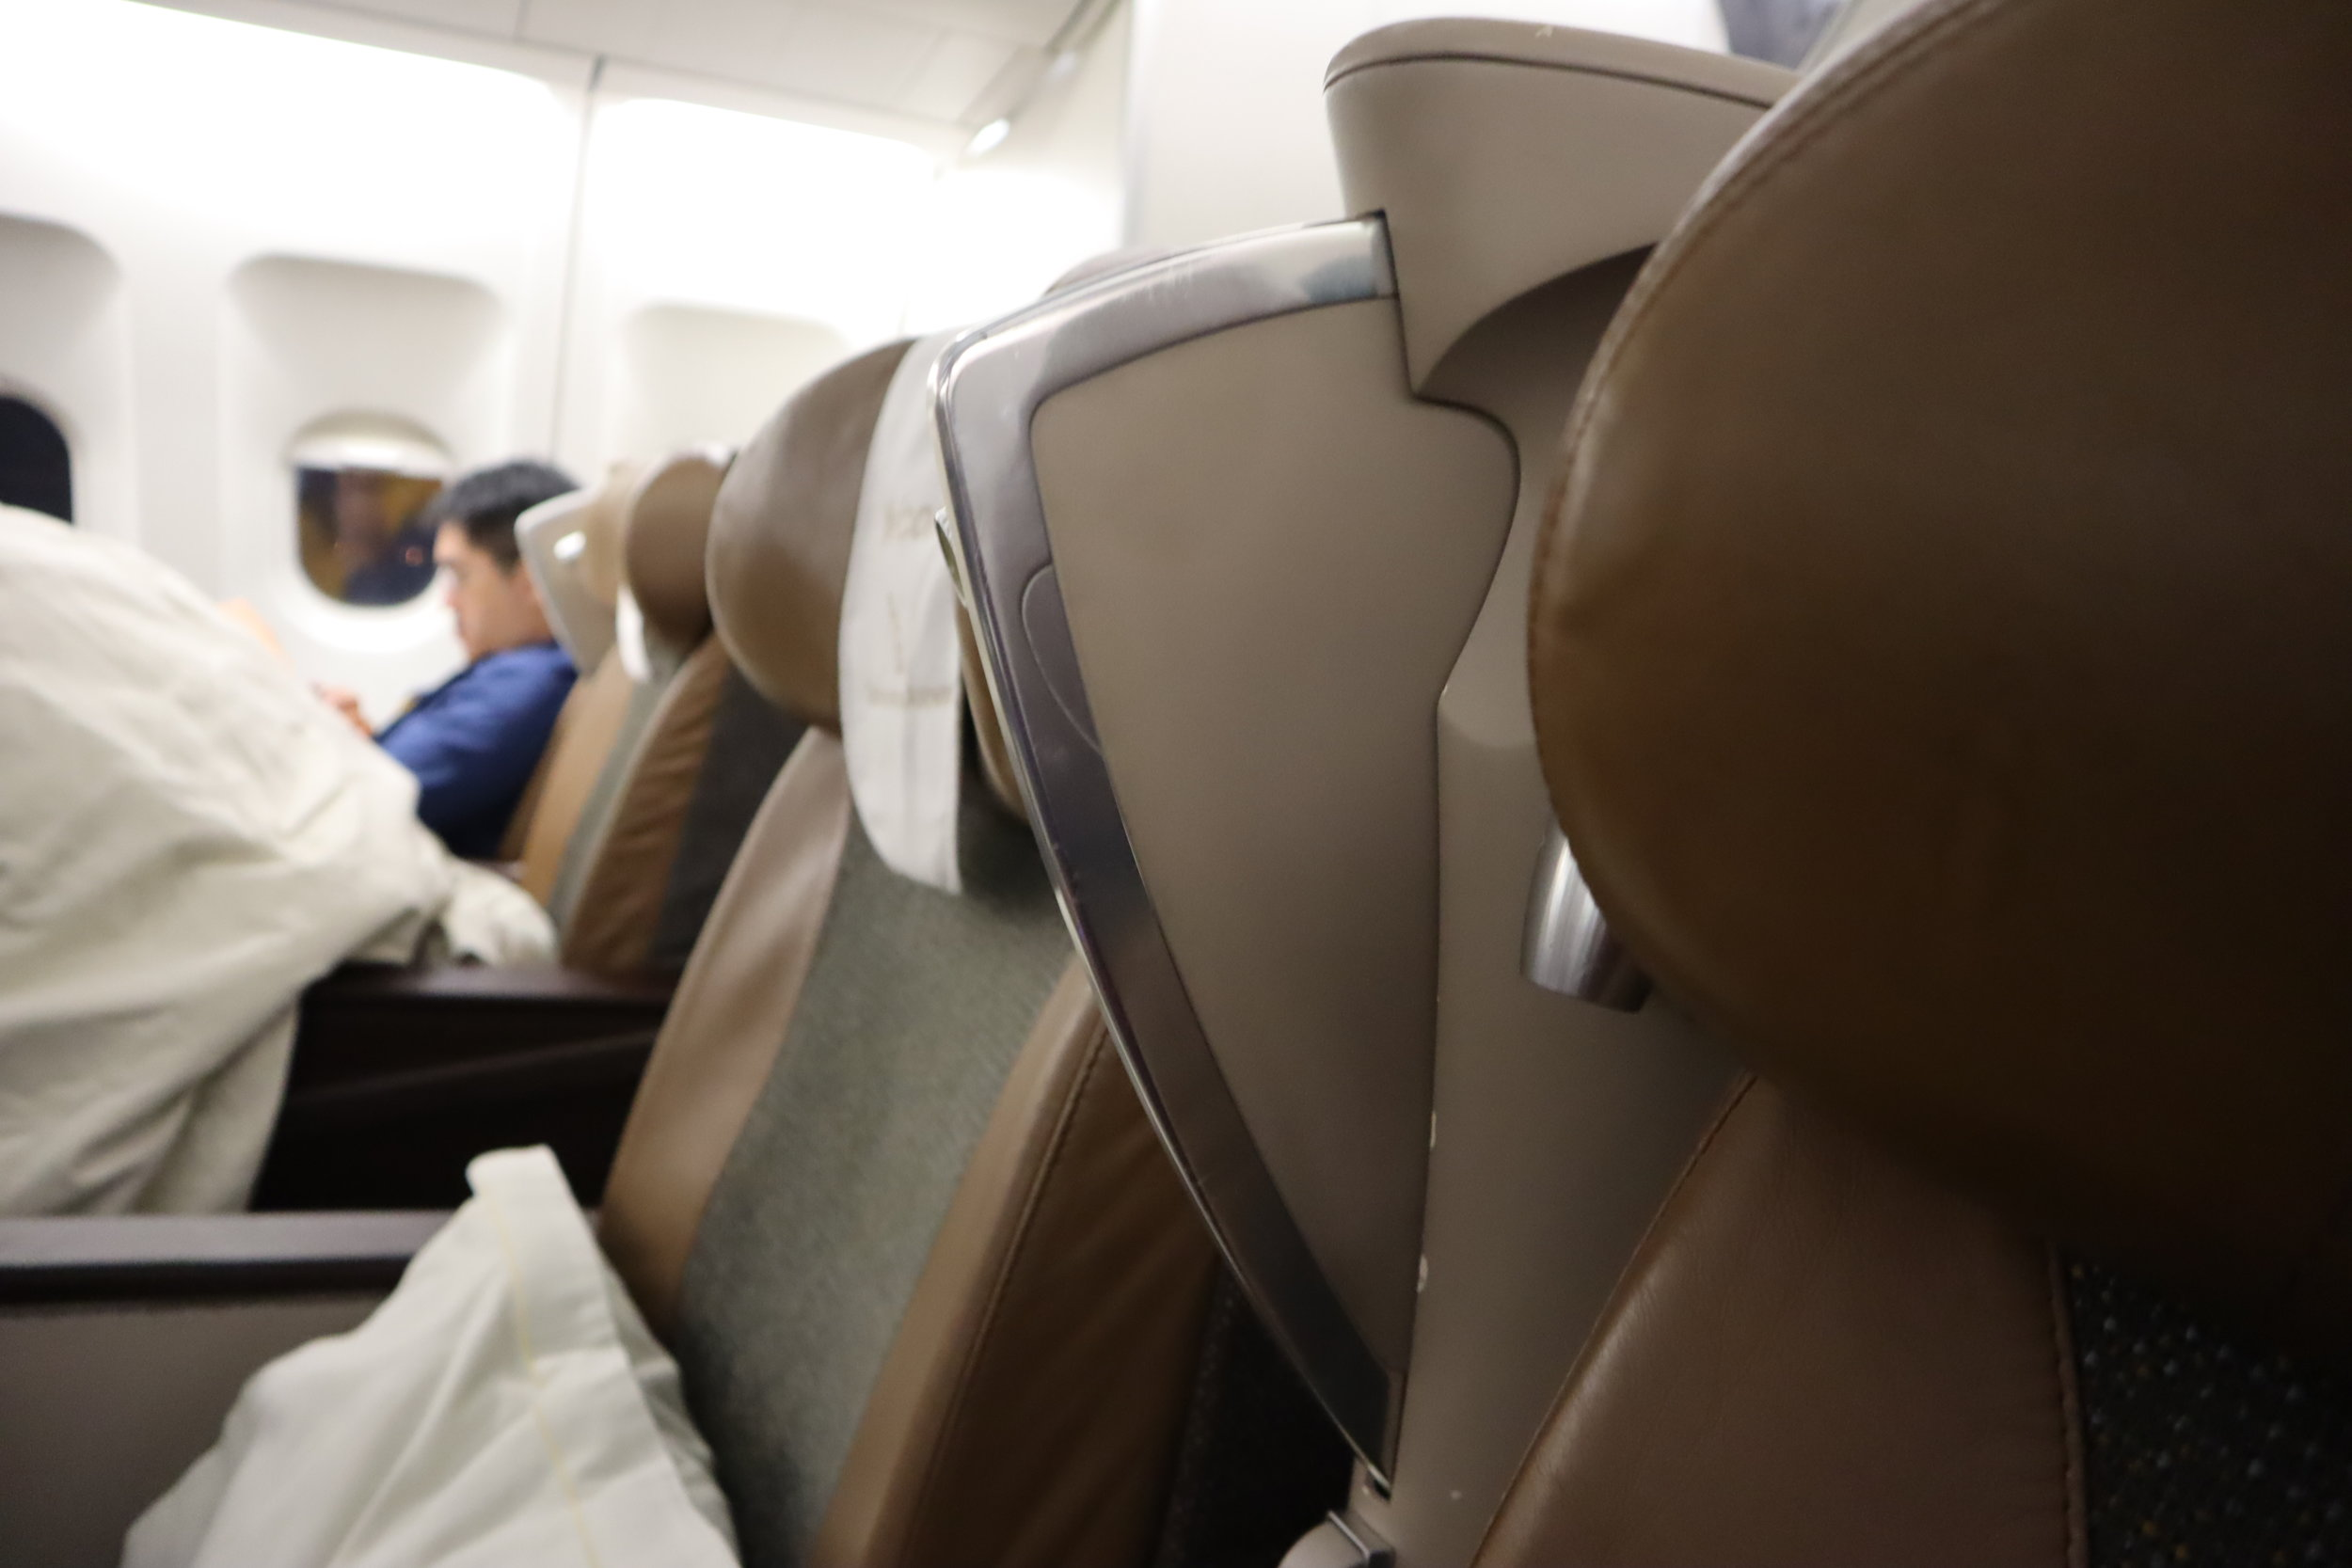 South African Airways business class – Small privacy divider